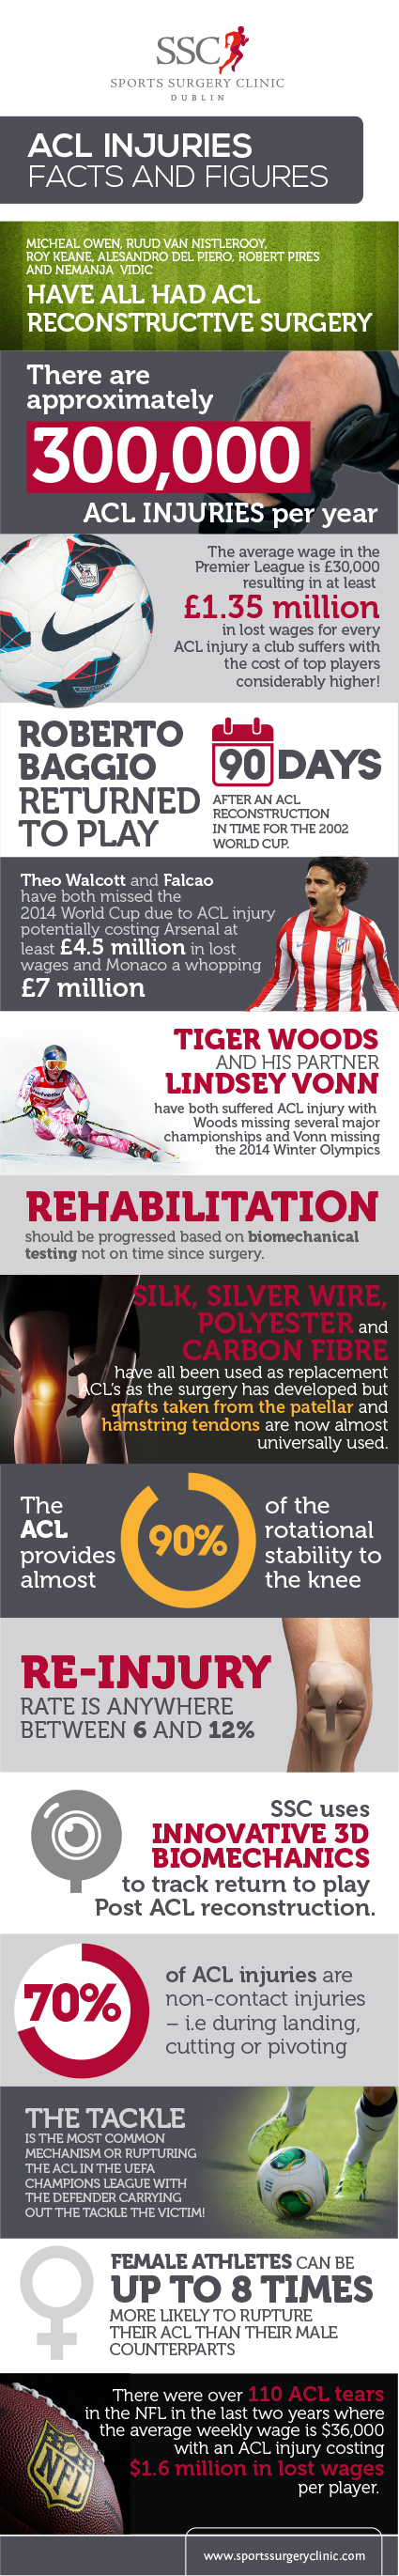 Infographic The Anterior Cruciate Ligament ( ACL)